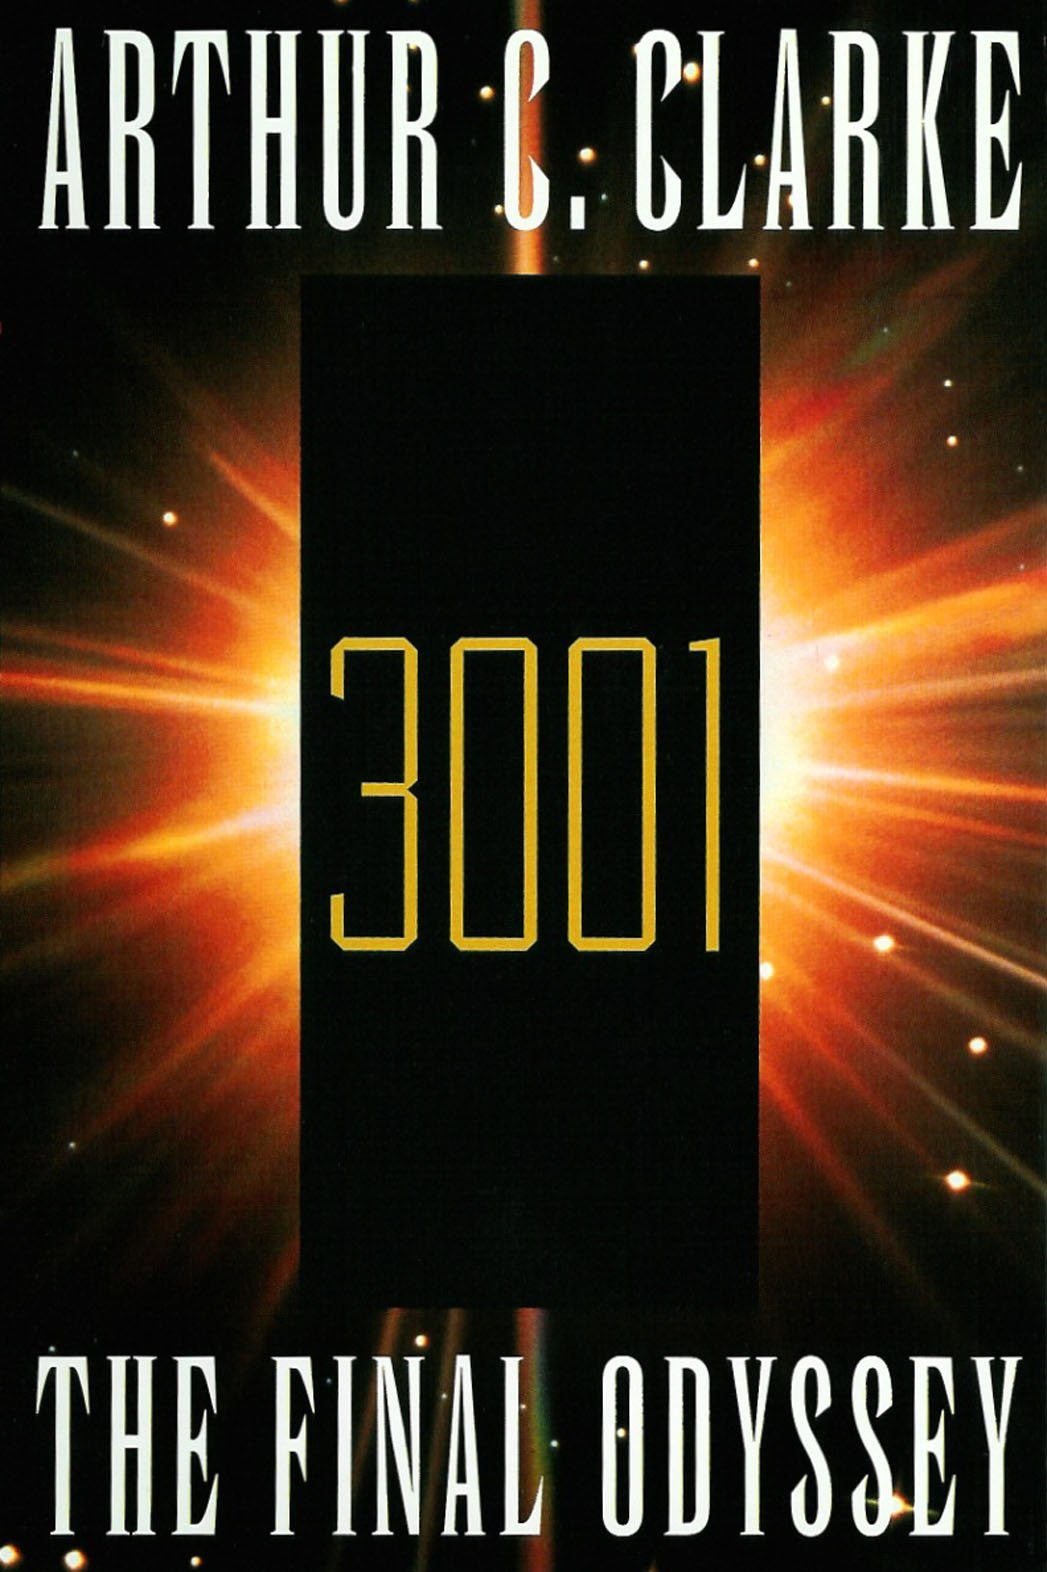 3001_the_final_odyssey_a_p_0